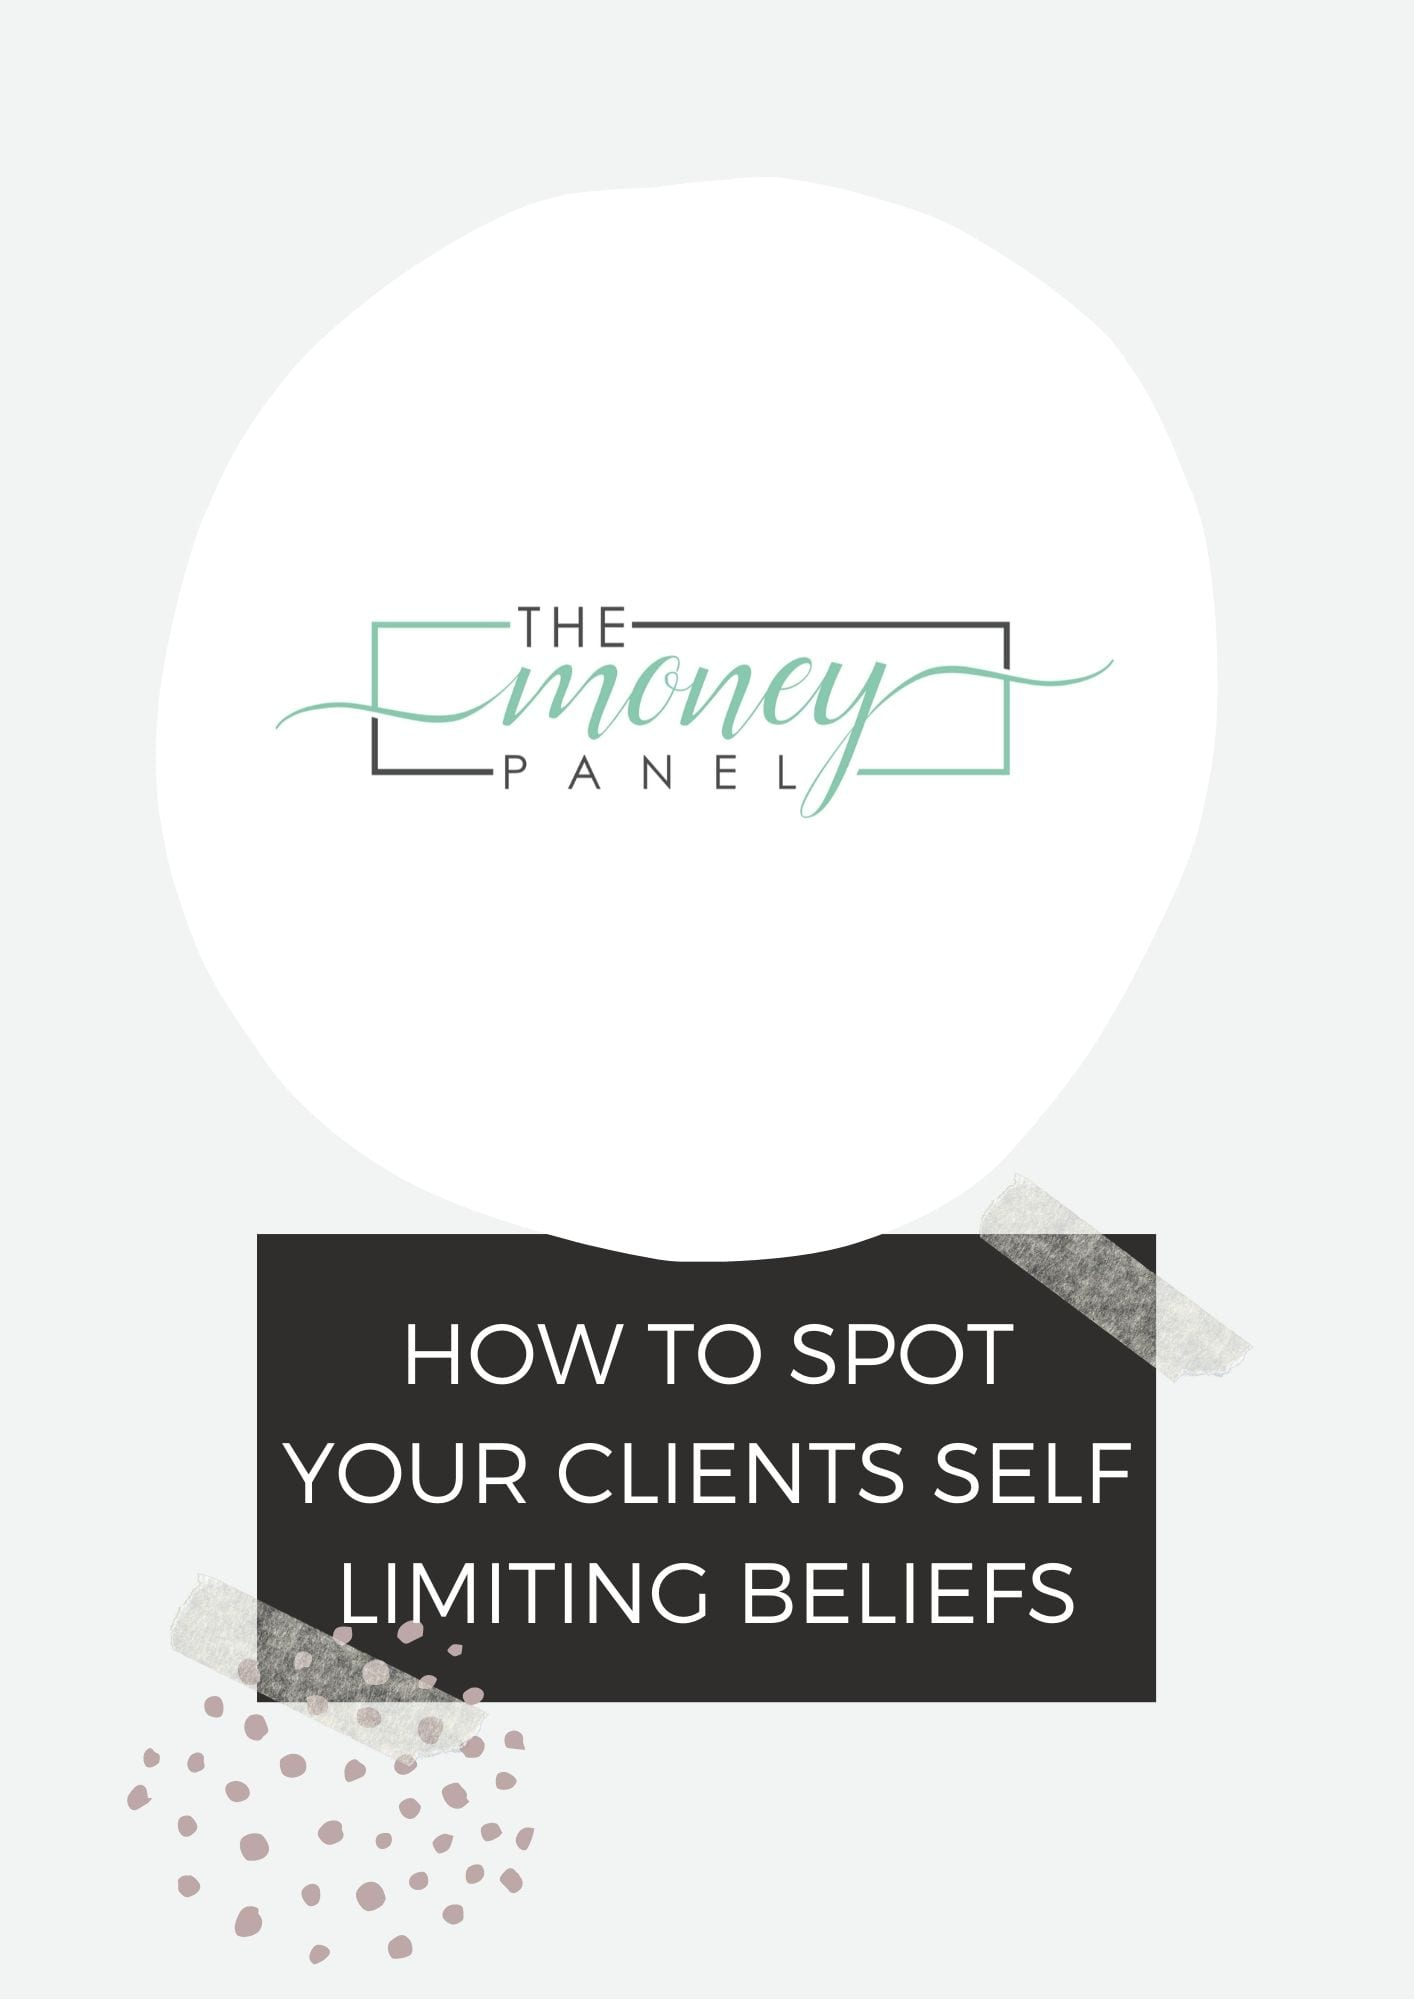 How to spot your clients self limiting beliefs